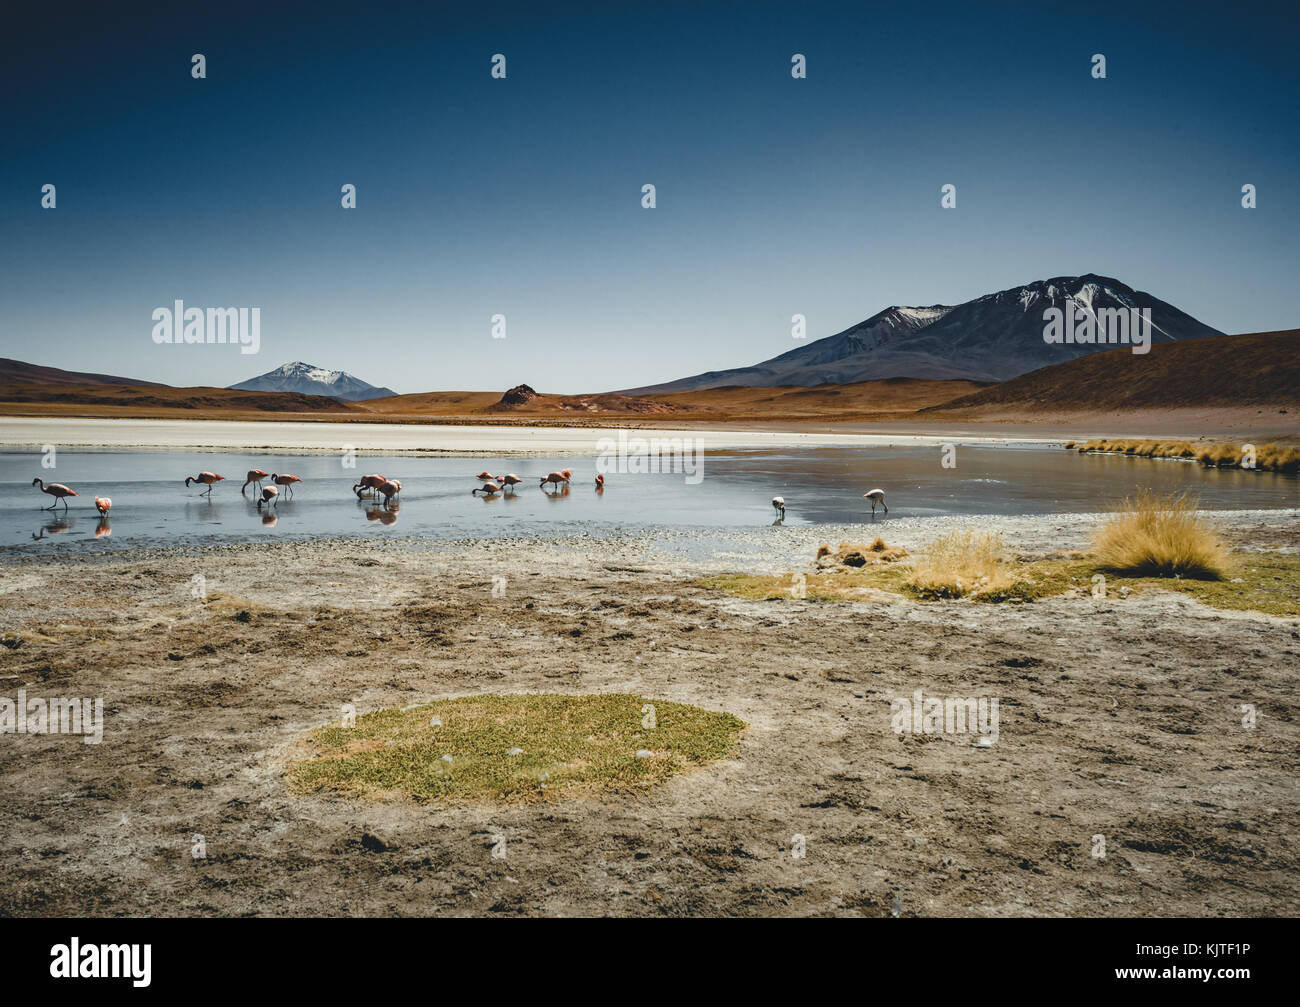 Photo taken in August 2017 in Altiplano Bolivia, South America: Flamingos at Laguna Canapa Altiplano Bolivia Salar - Stock Image